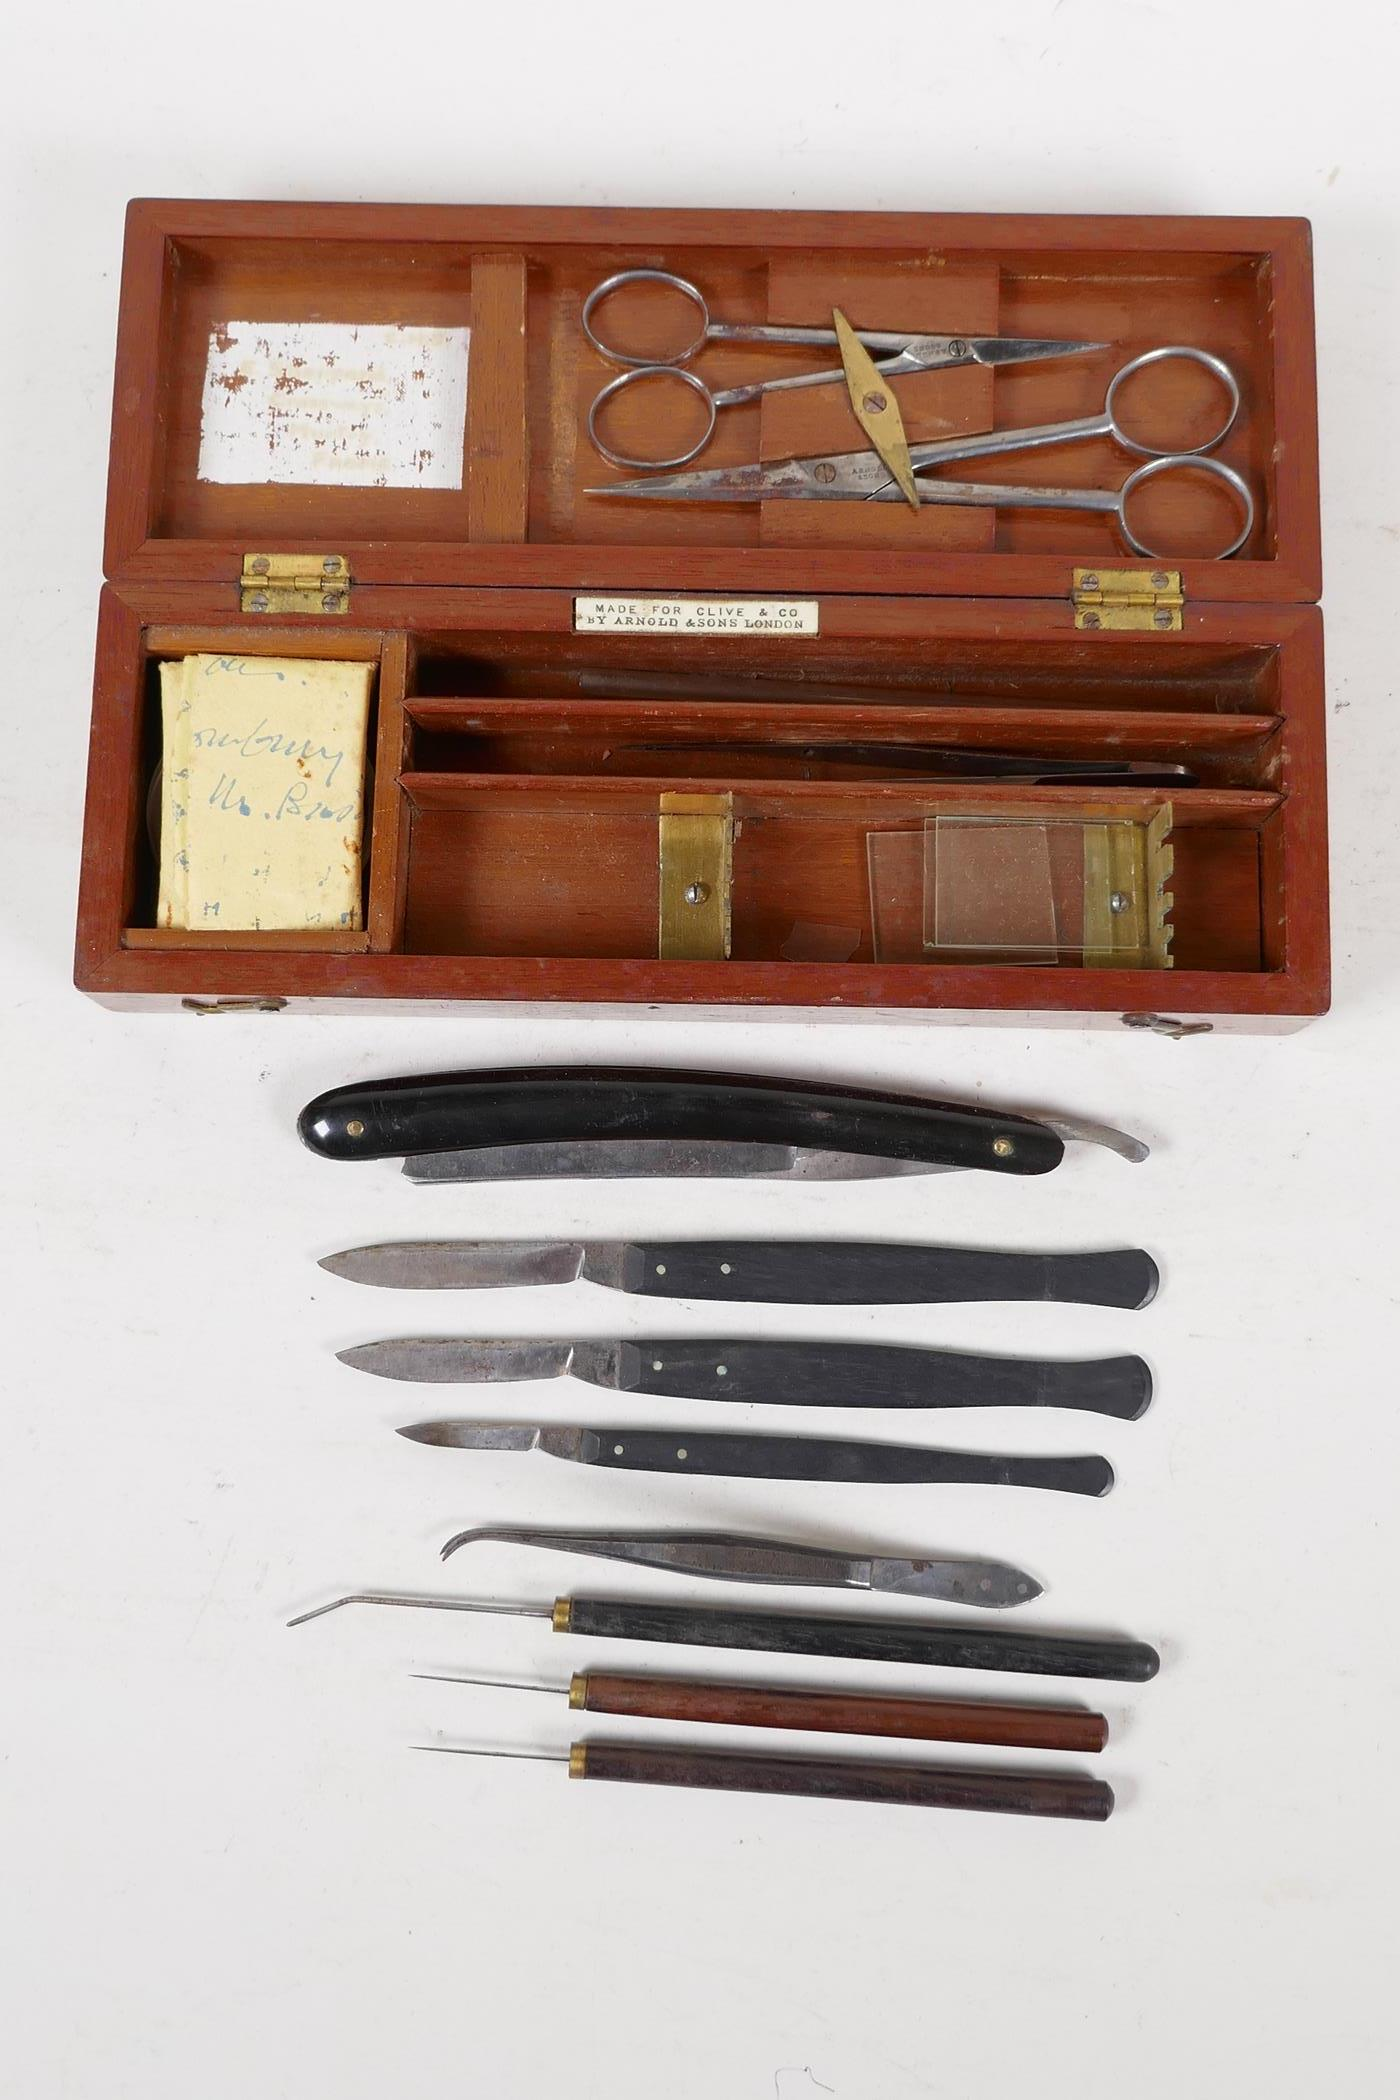 A field surgeons kit by Arnold & Sons, London, for Clive & Co, containing scalpels, a cut throat, - Image 3 of 5